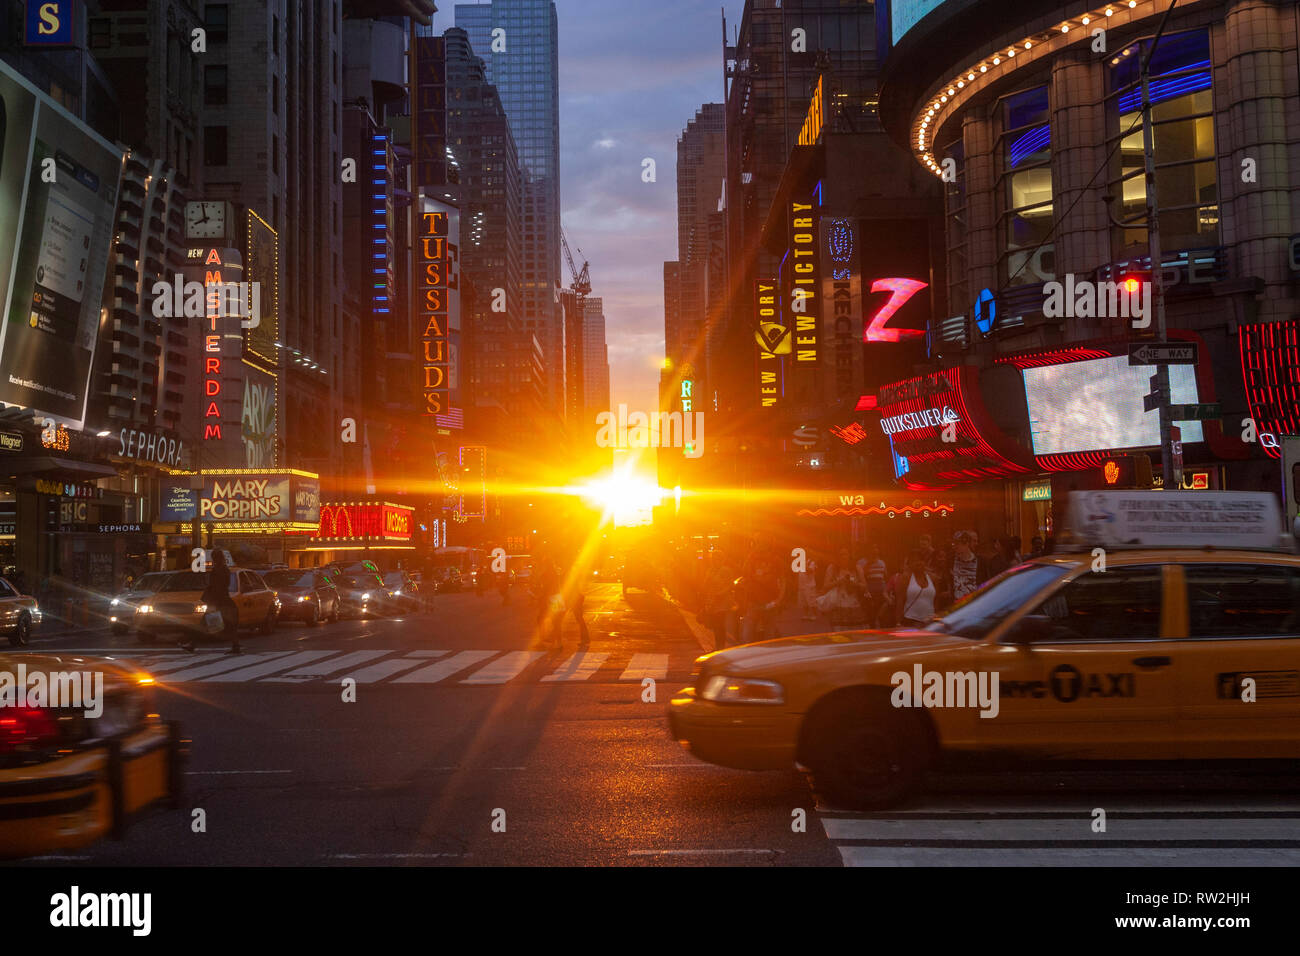 Yellow taxis in W 42nd St at sunset near Times Sq, Manhattan, New York City, USA Stock Photo